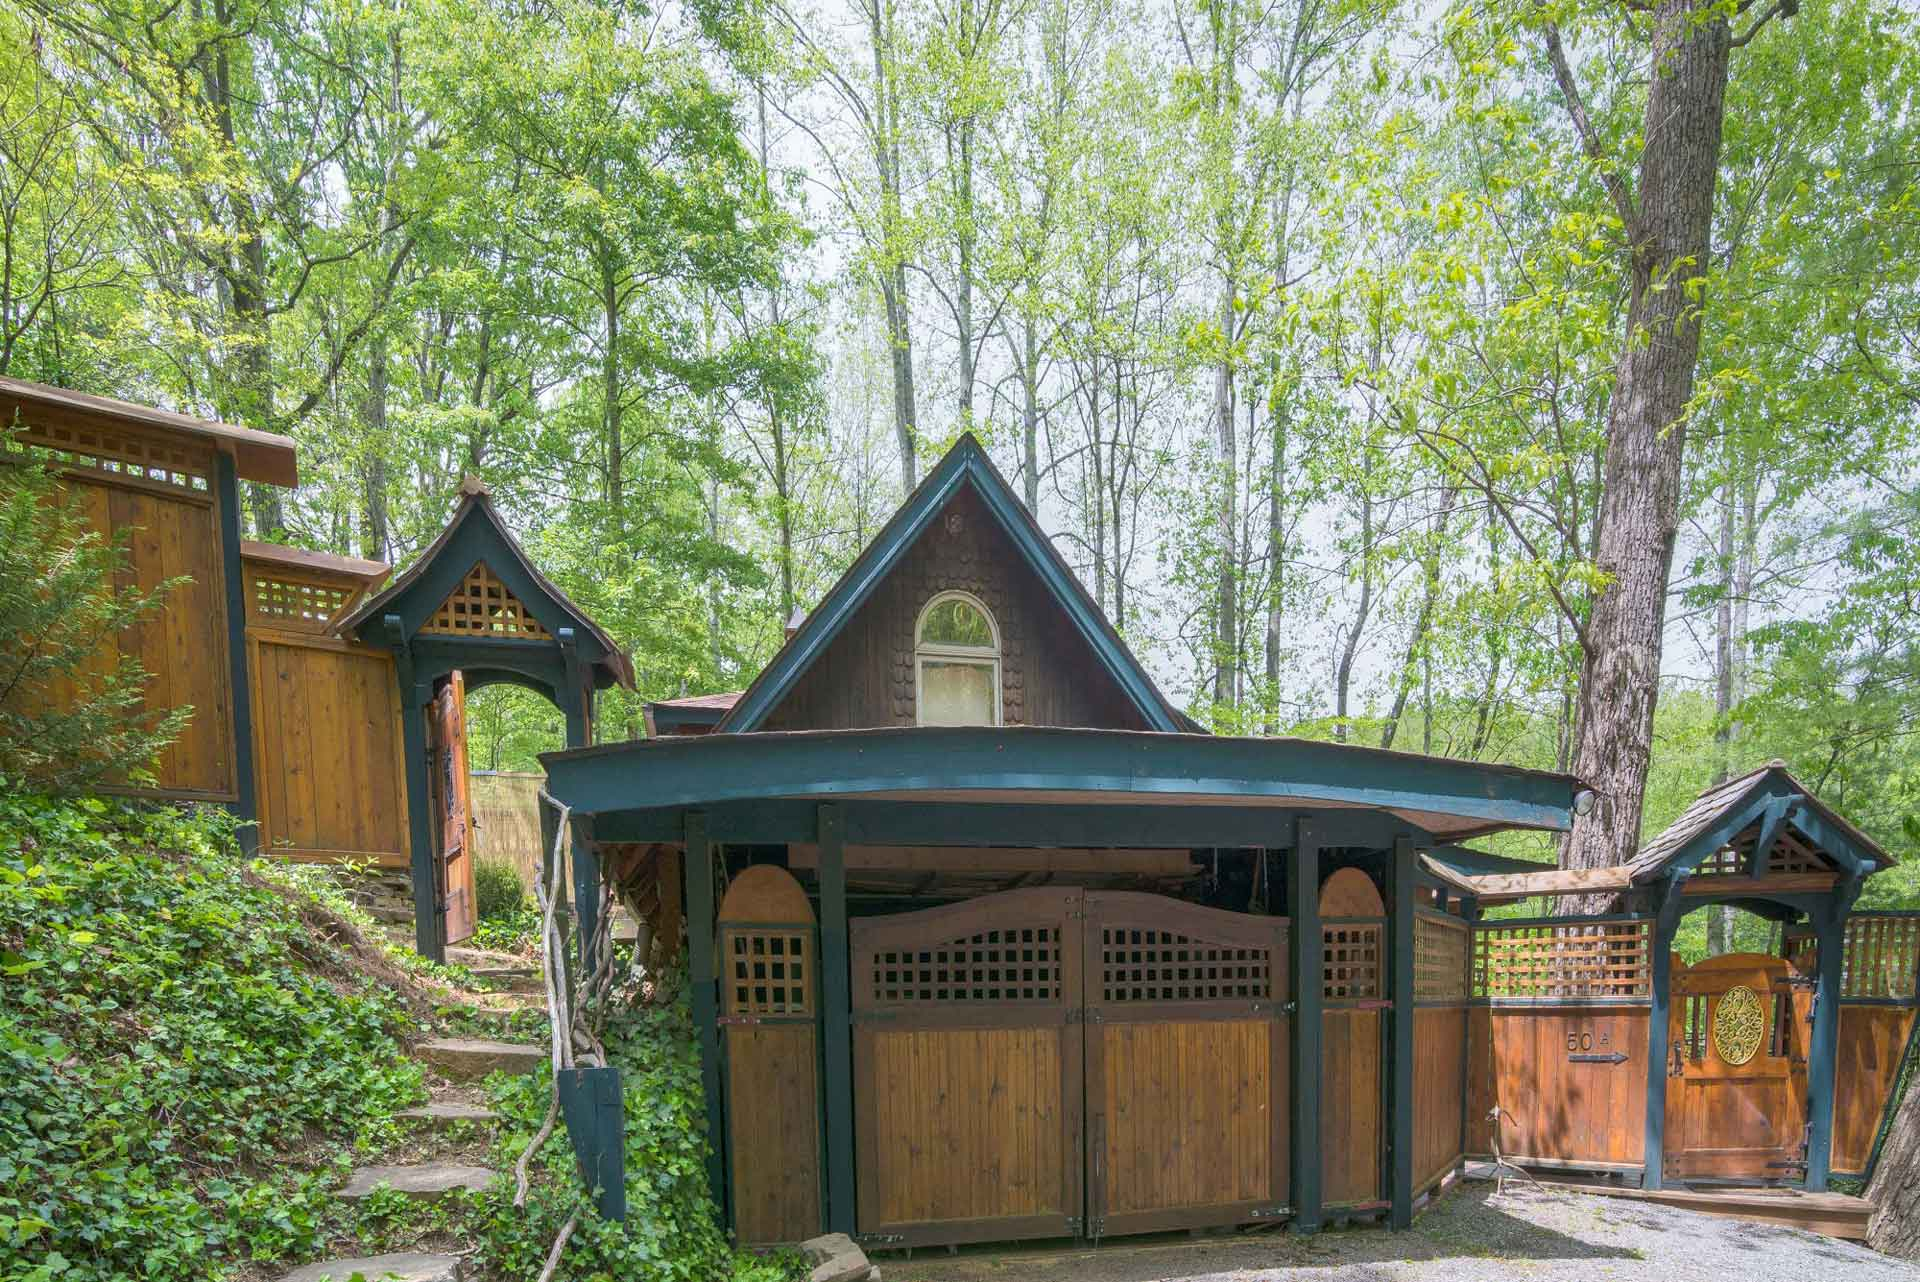 secluded sale smoky nc cabin cherokee for gatlinburg carolina mountain mountains rentals north houses great rental cabins